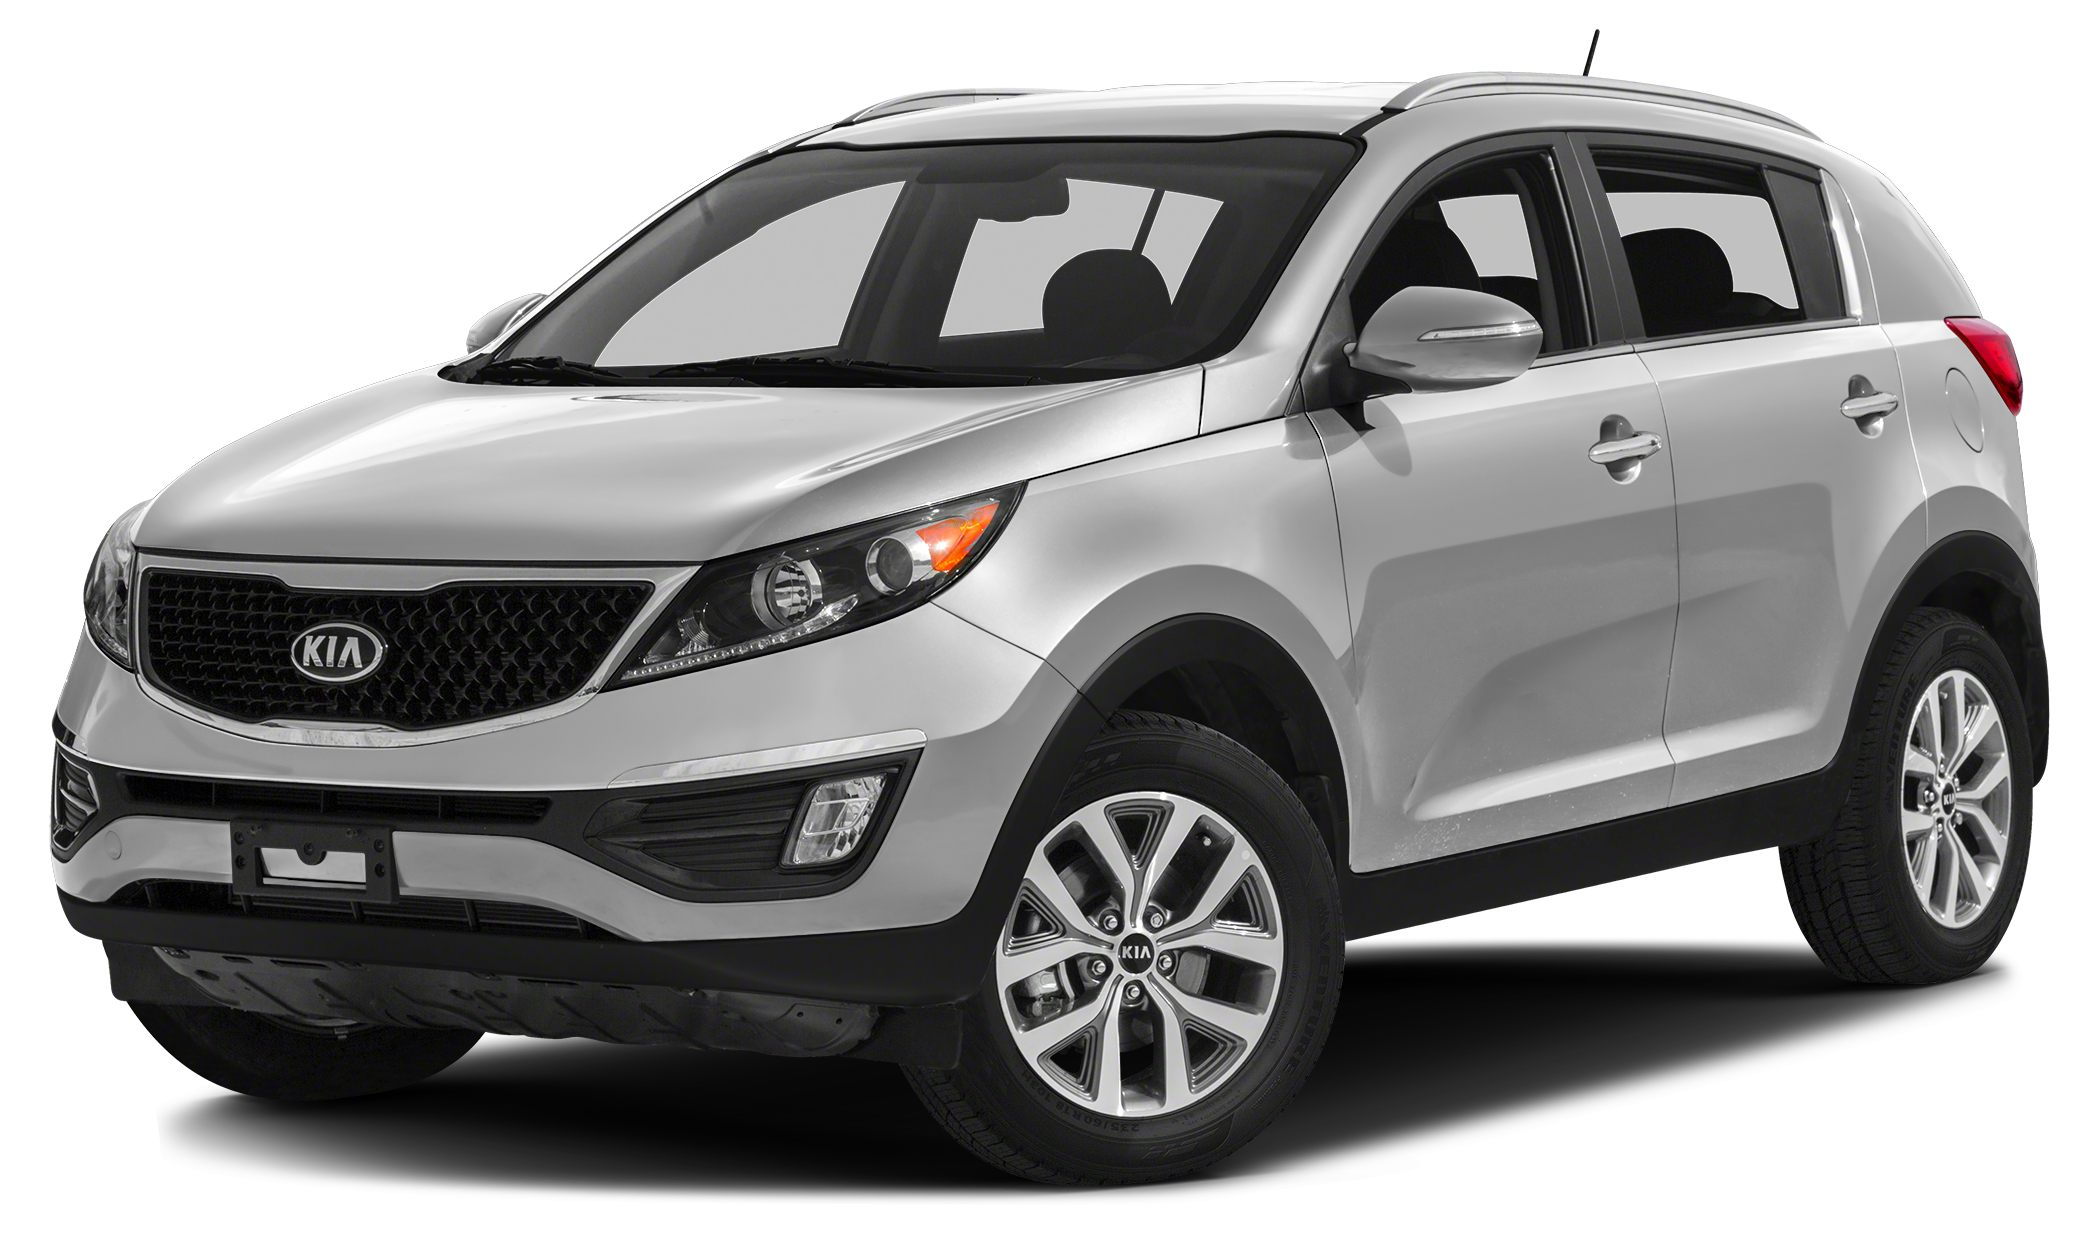 2016 Kia Sportage LX AWD Remote keyless Entry Satellite CD with MP3 and Steering Wheel Controls